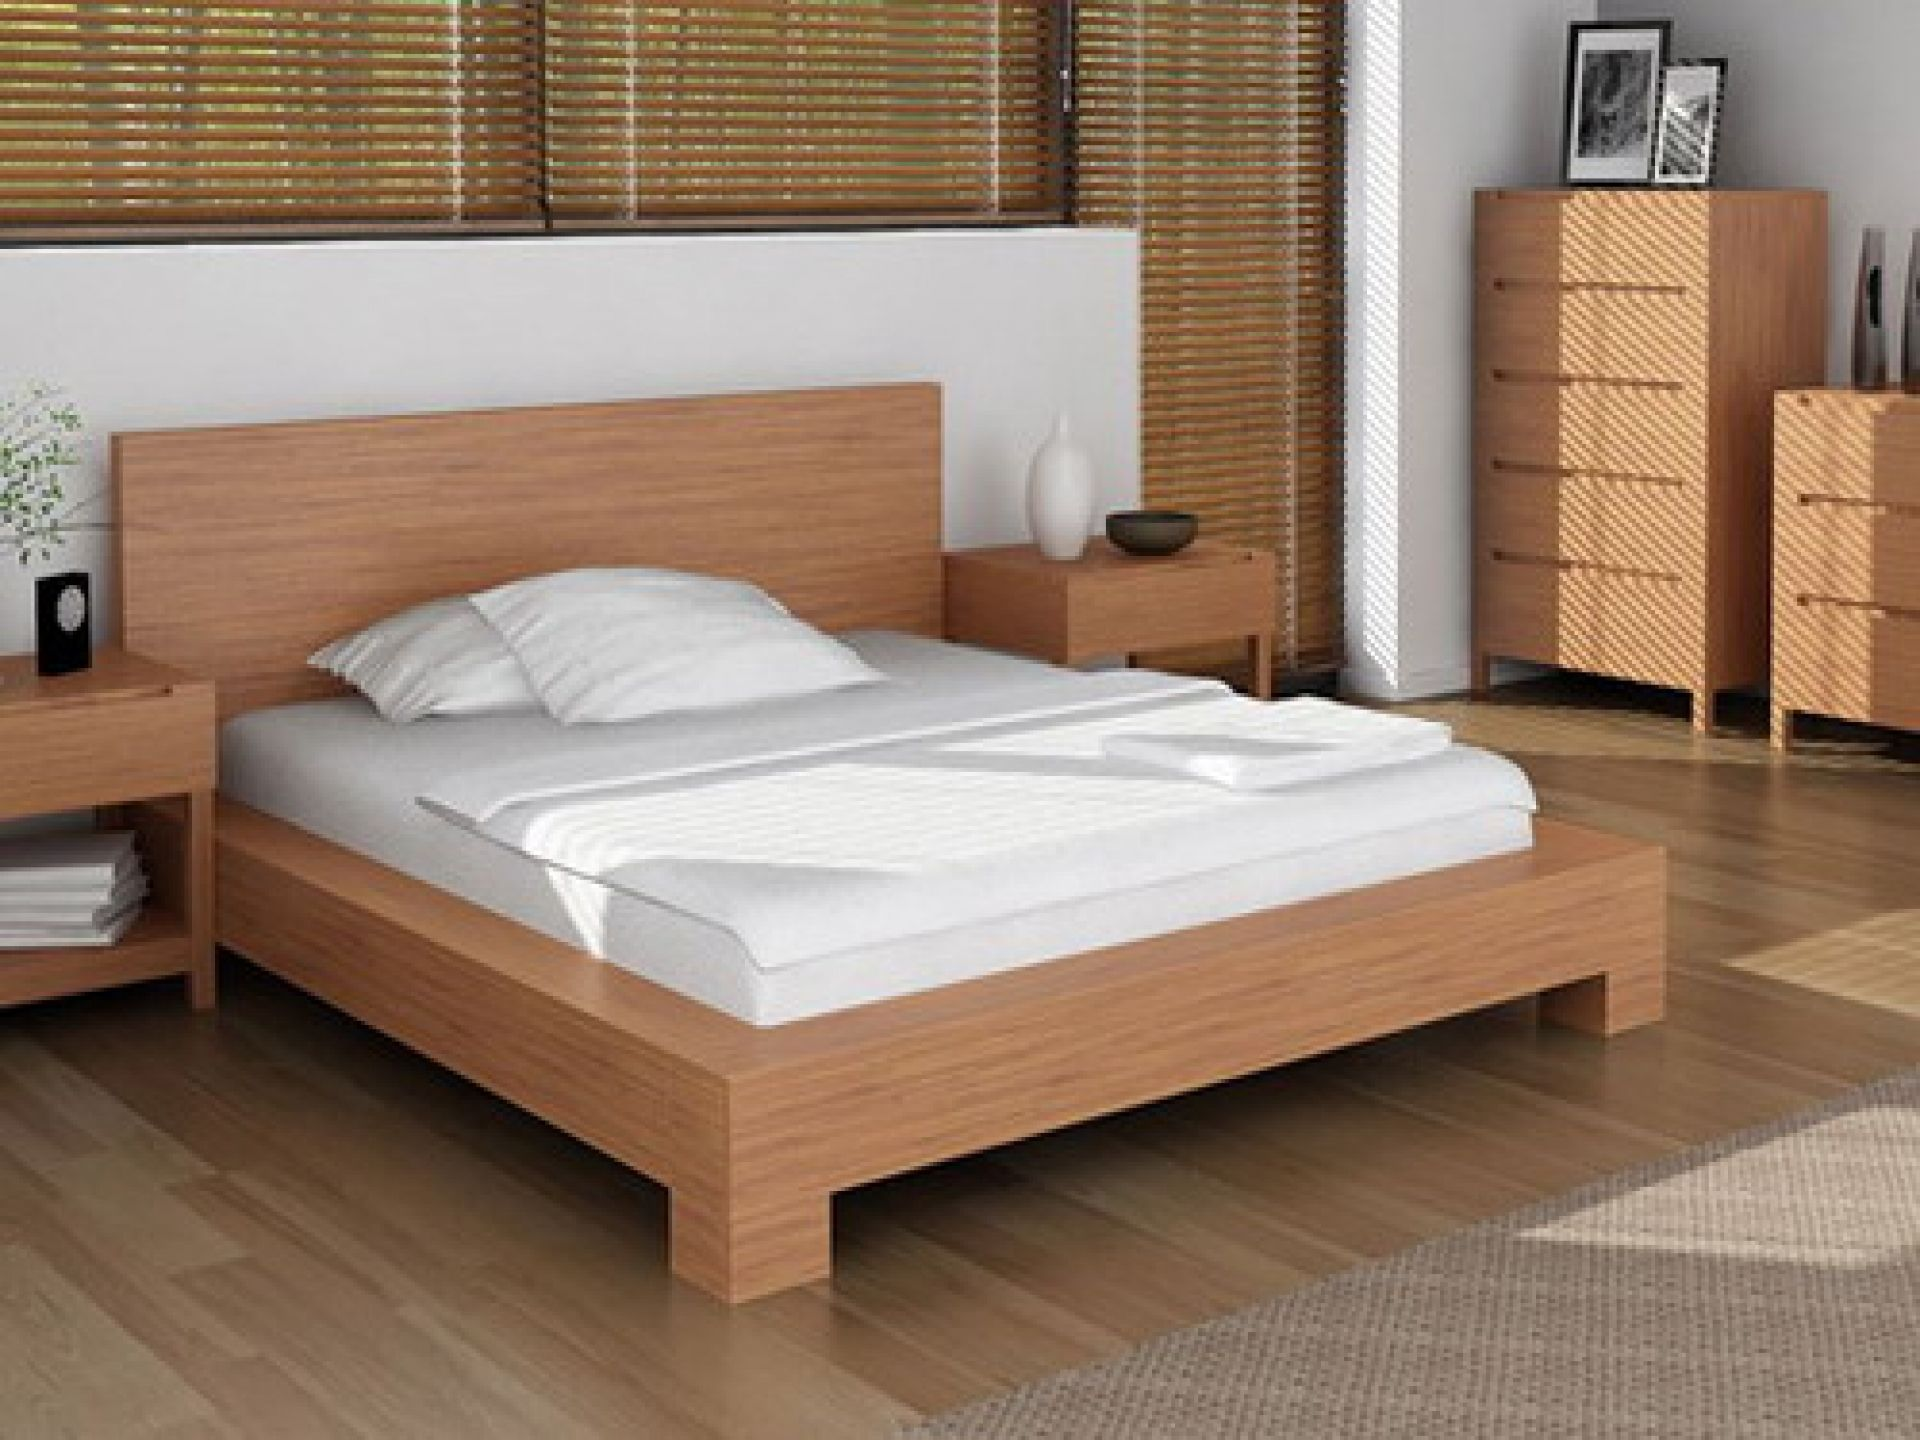 Best Canvas Of Simple Wood Bed Frame Ideas Plattform Bett 400 x 300